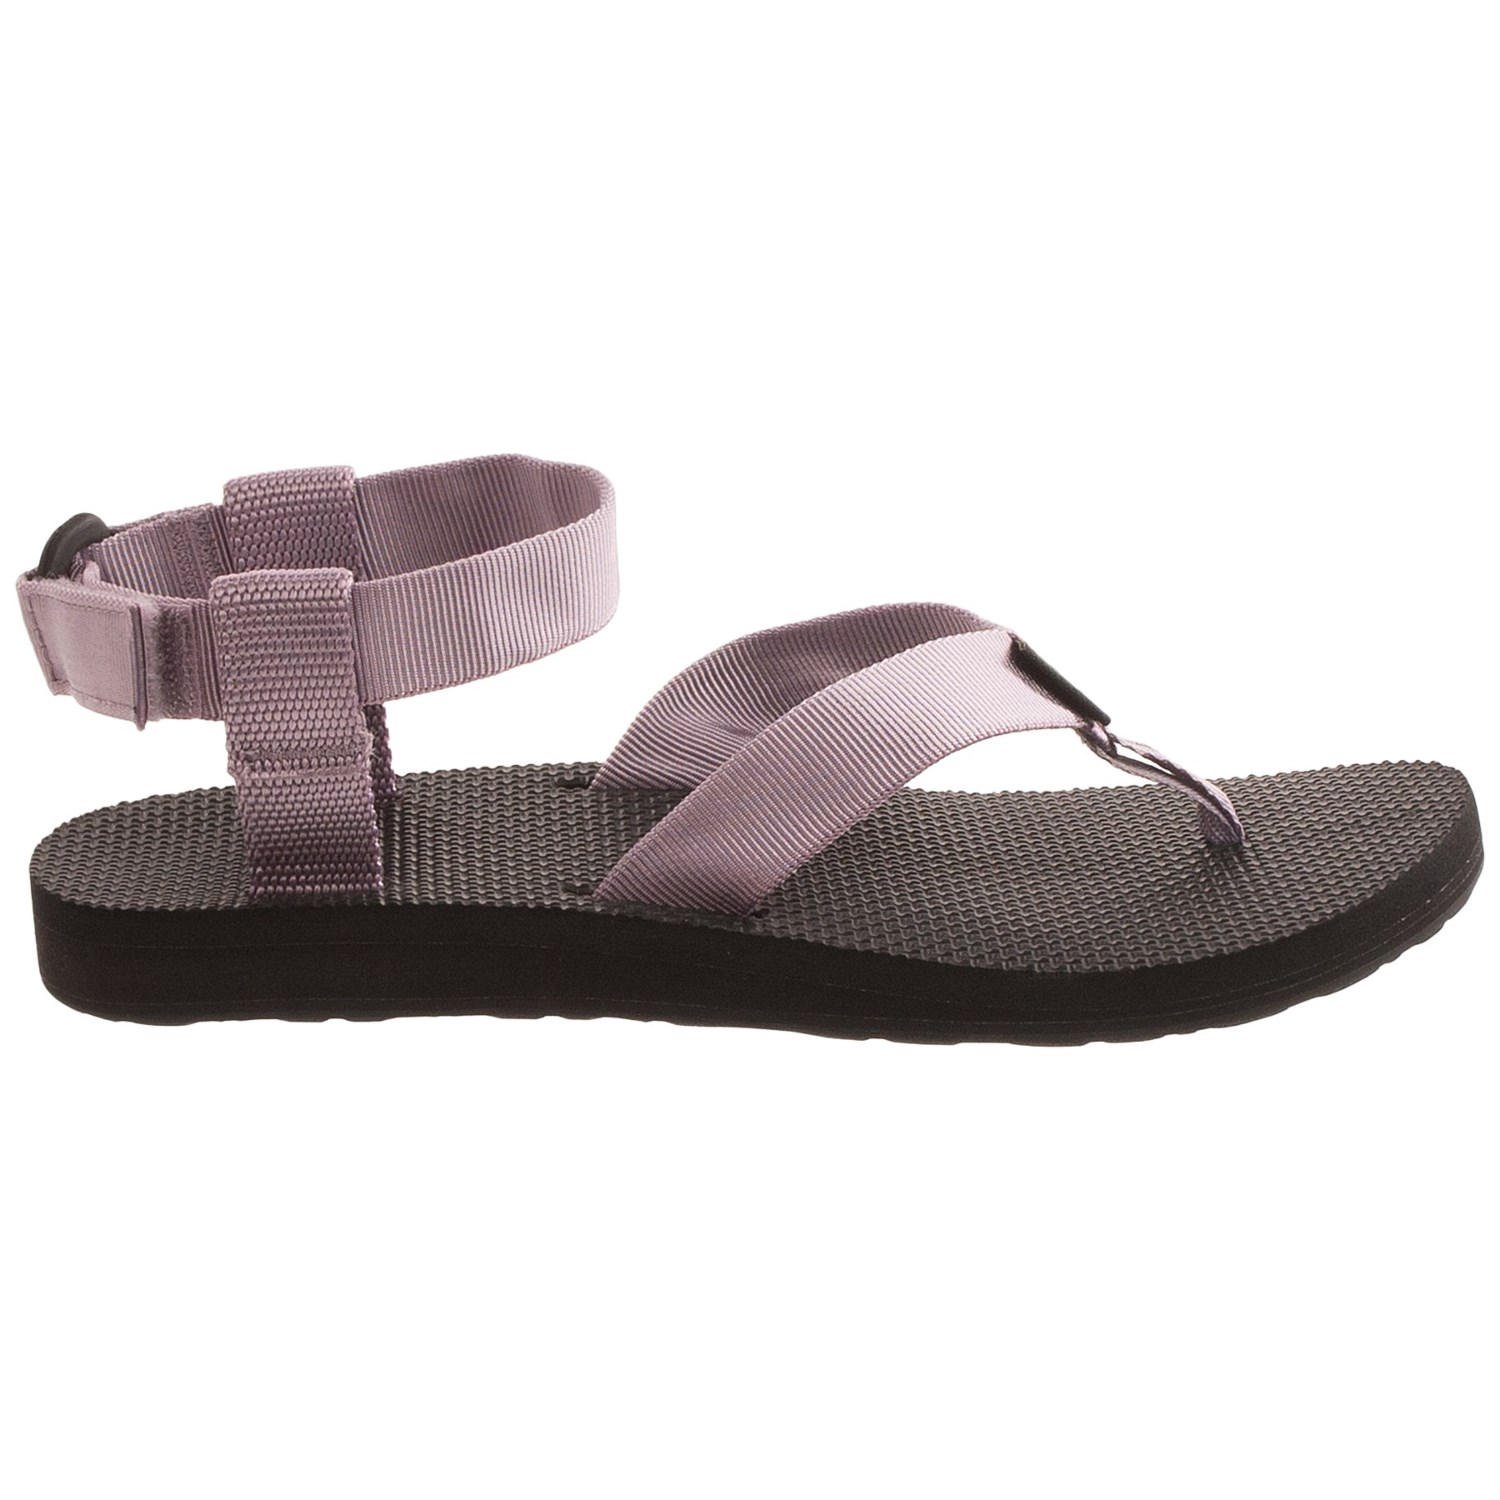 Teva Original Sport Sandals (For Women) - Save 72%